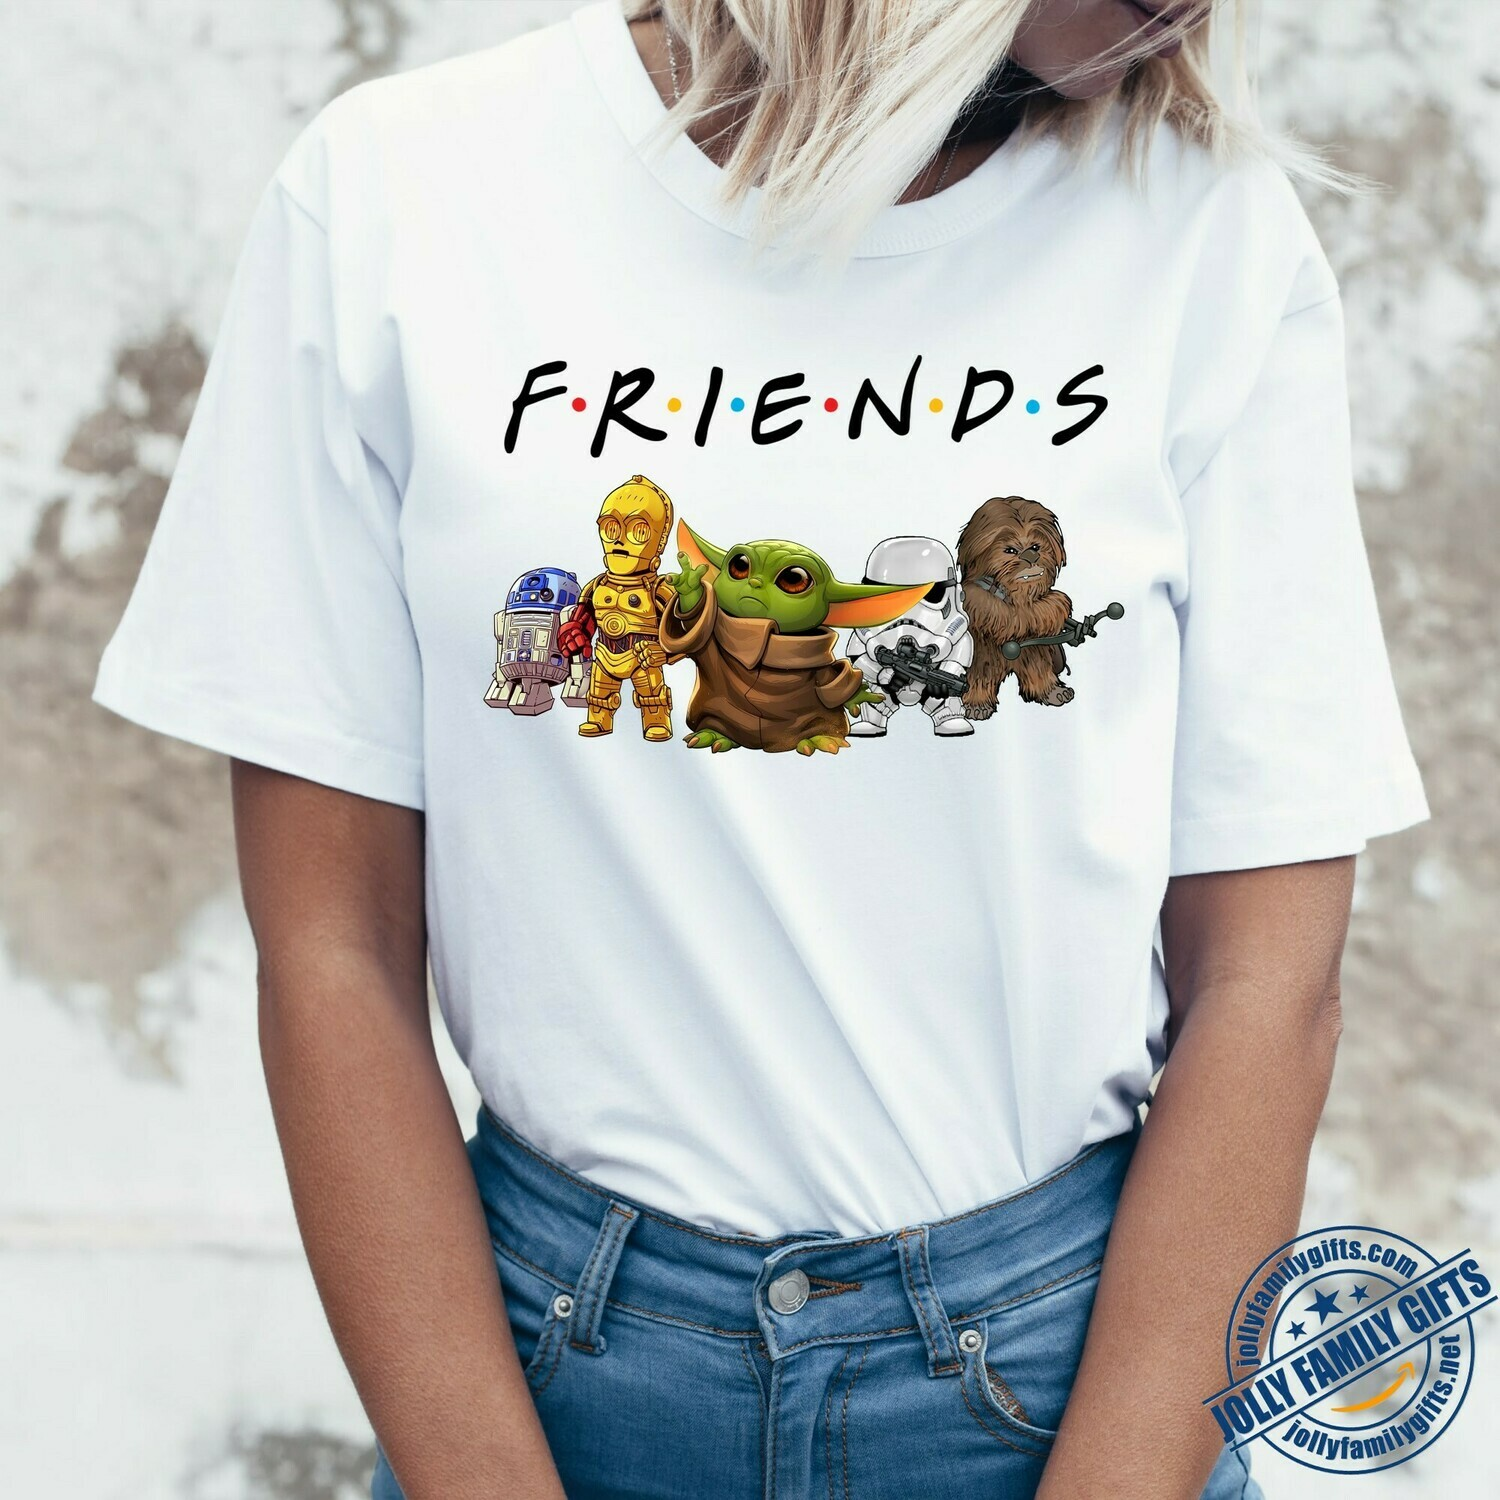 Baby Yoda The Mandalorian with death Star Wars Chibi Movie Film Yoda best Friends Jedi Squad s for Family T-Shirt Hoodie Sweatshirt Sweater Tee Kids Youth Gifts Jolly Family Gifts